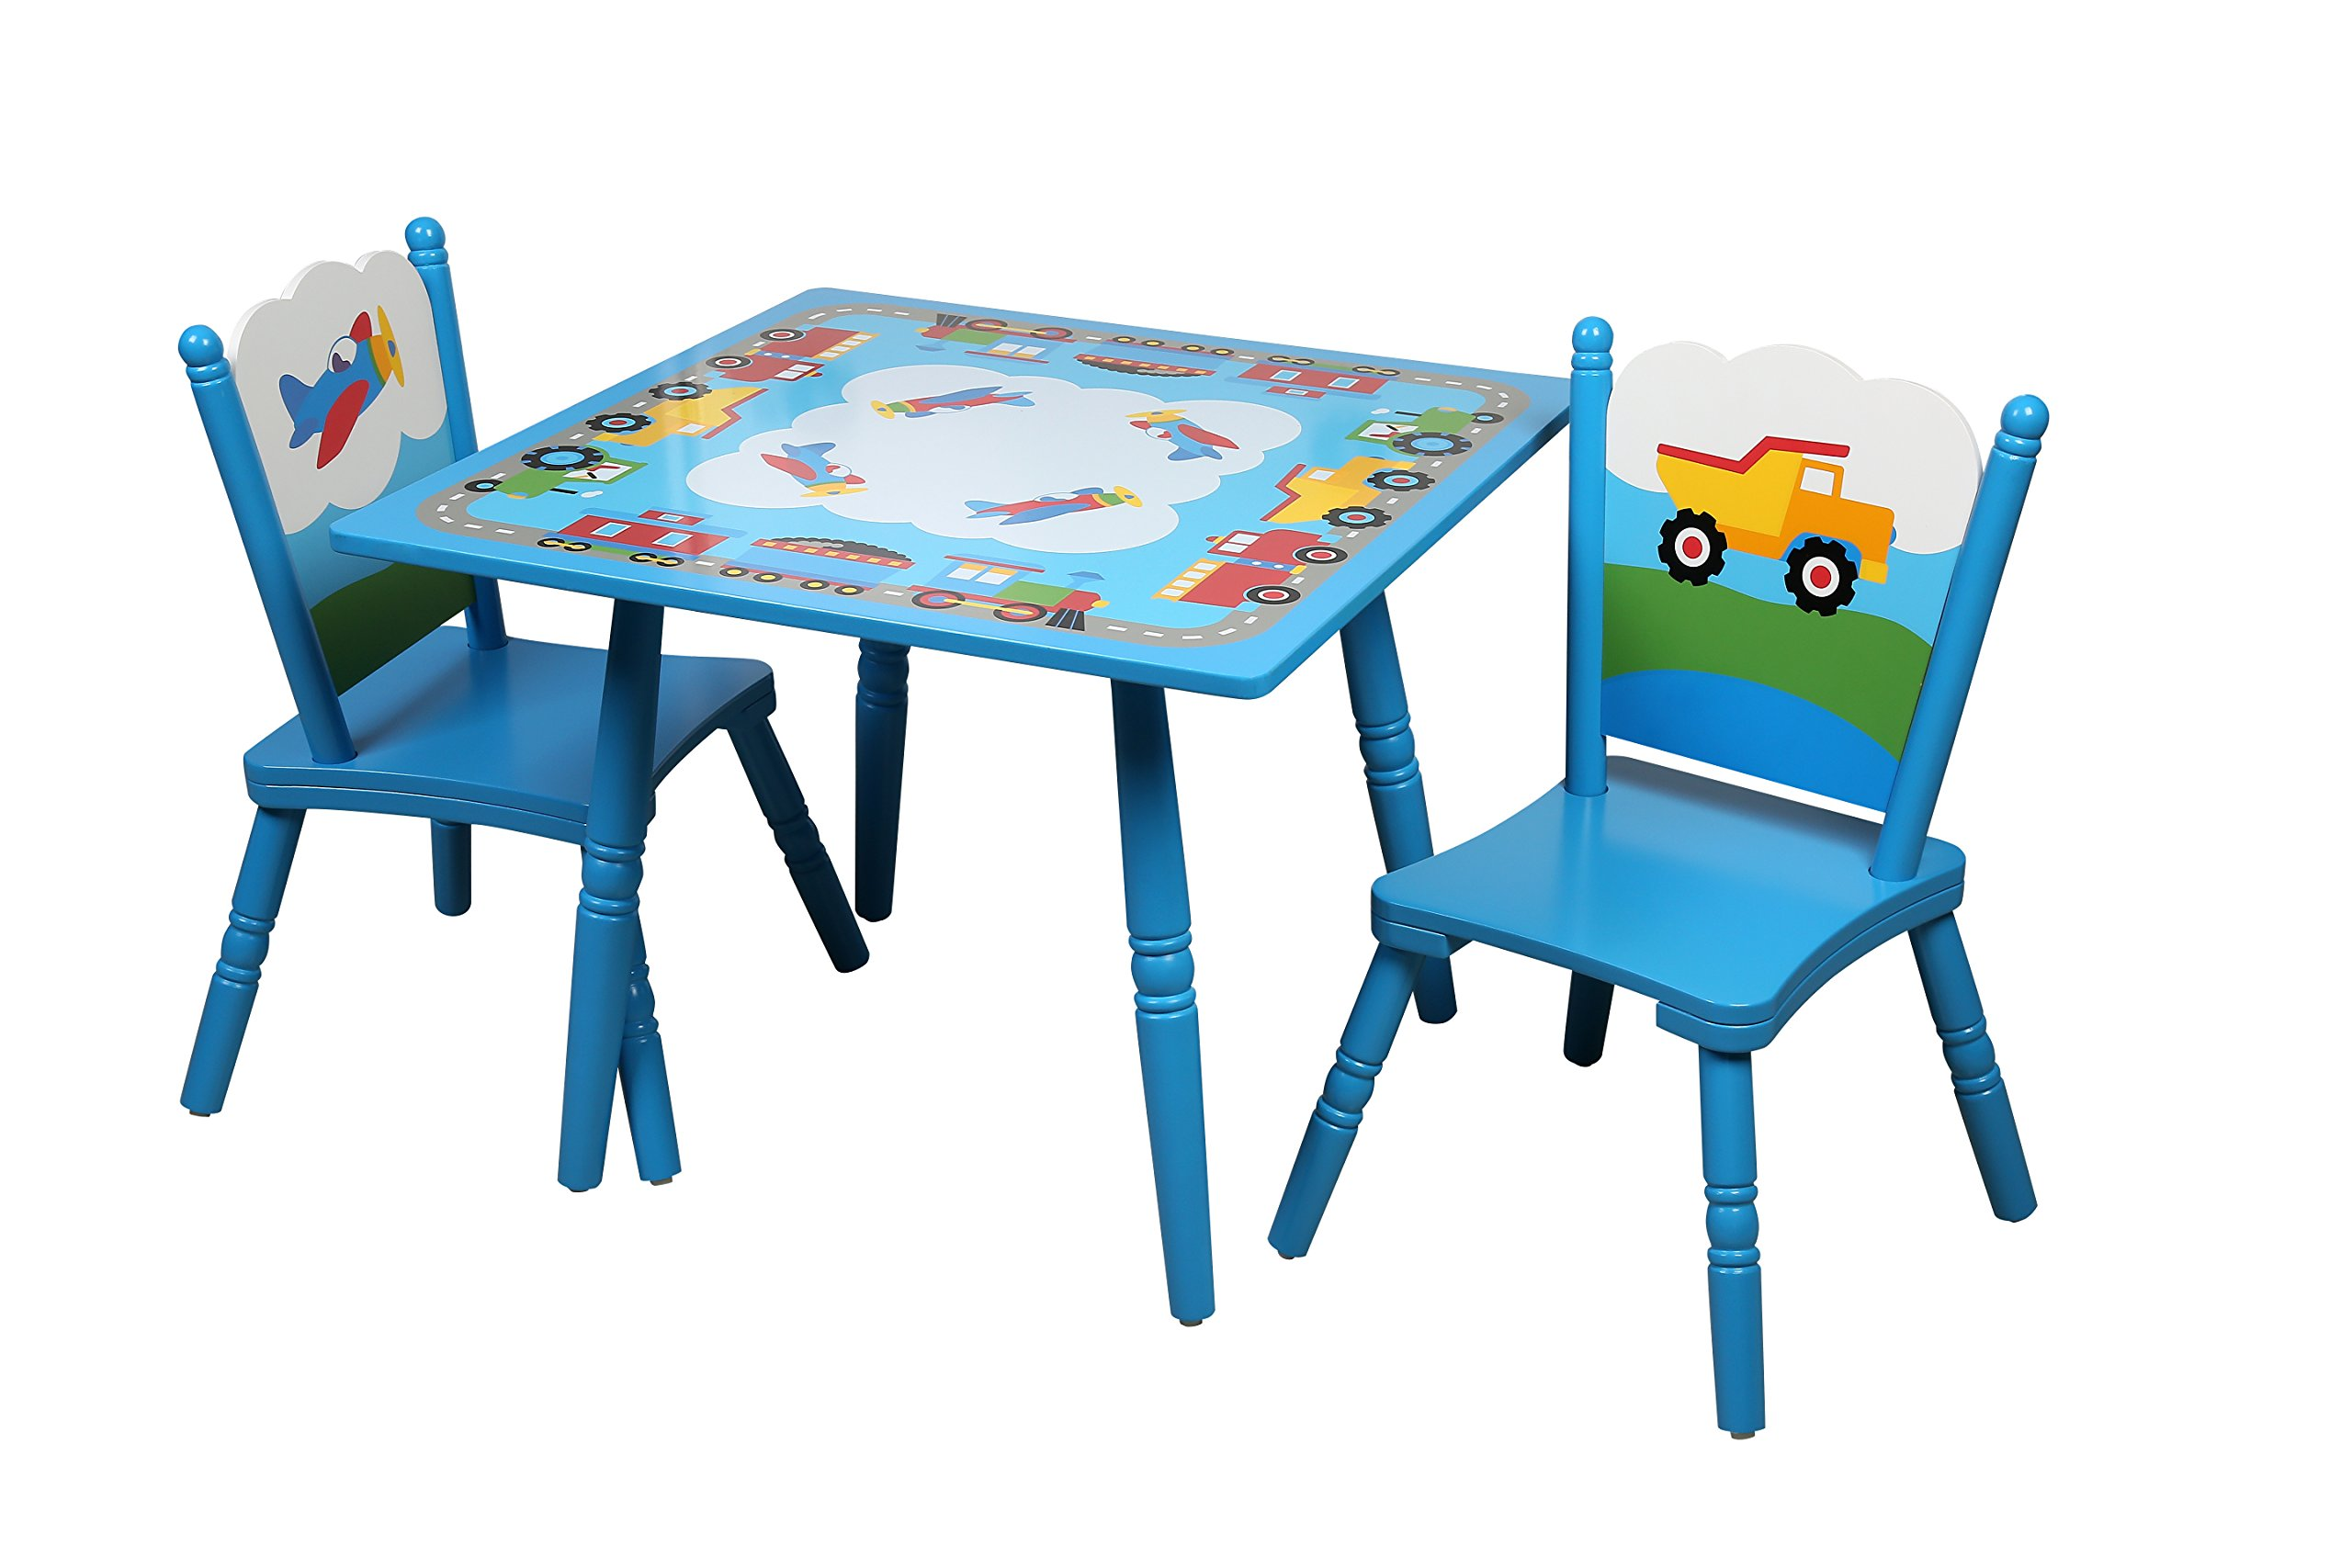 Olive Kids Trains, Planes, Trucks Table & Chair Set by Olive Kids (Image #1)